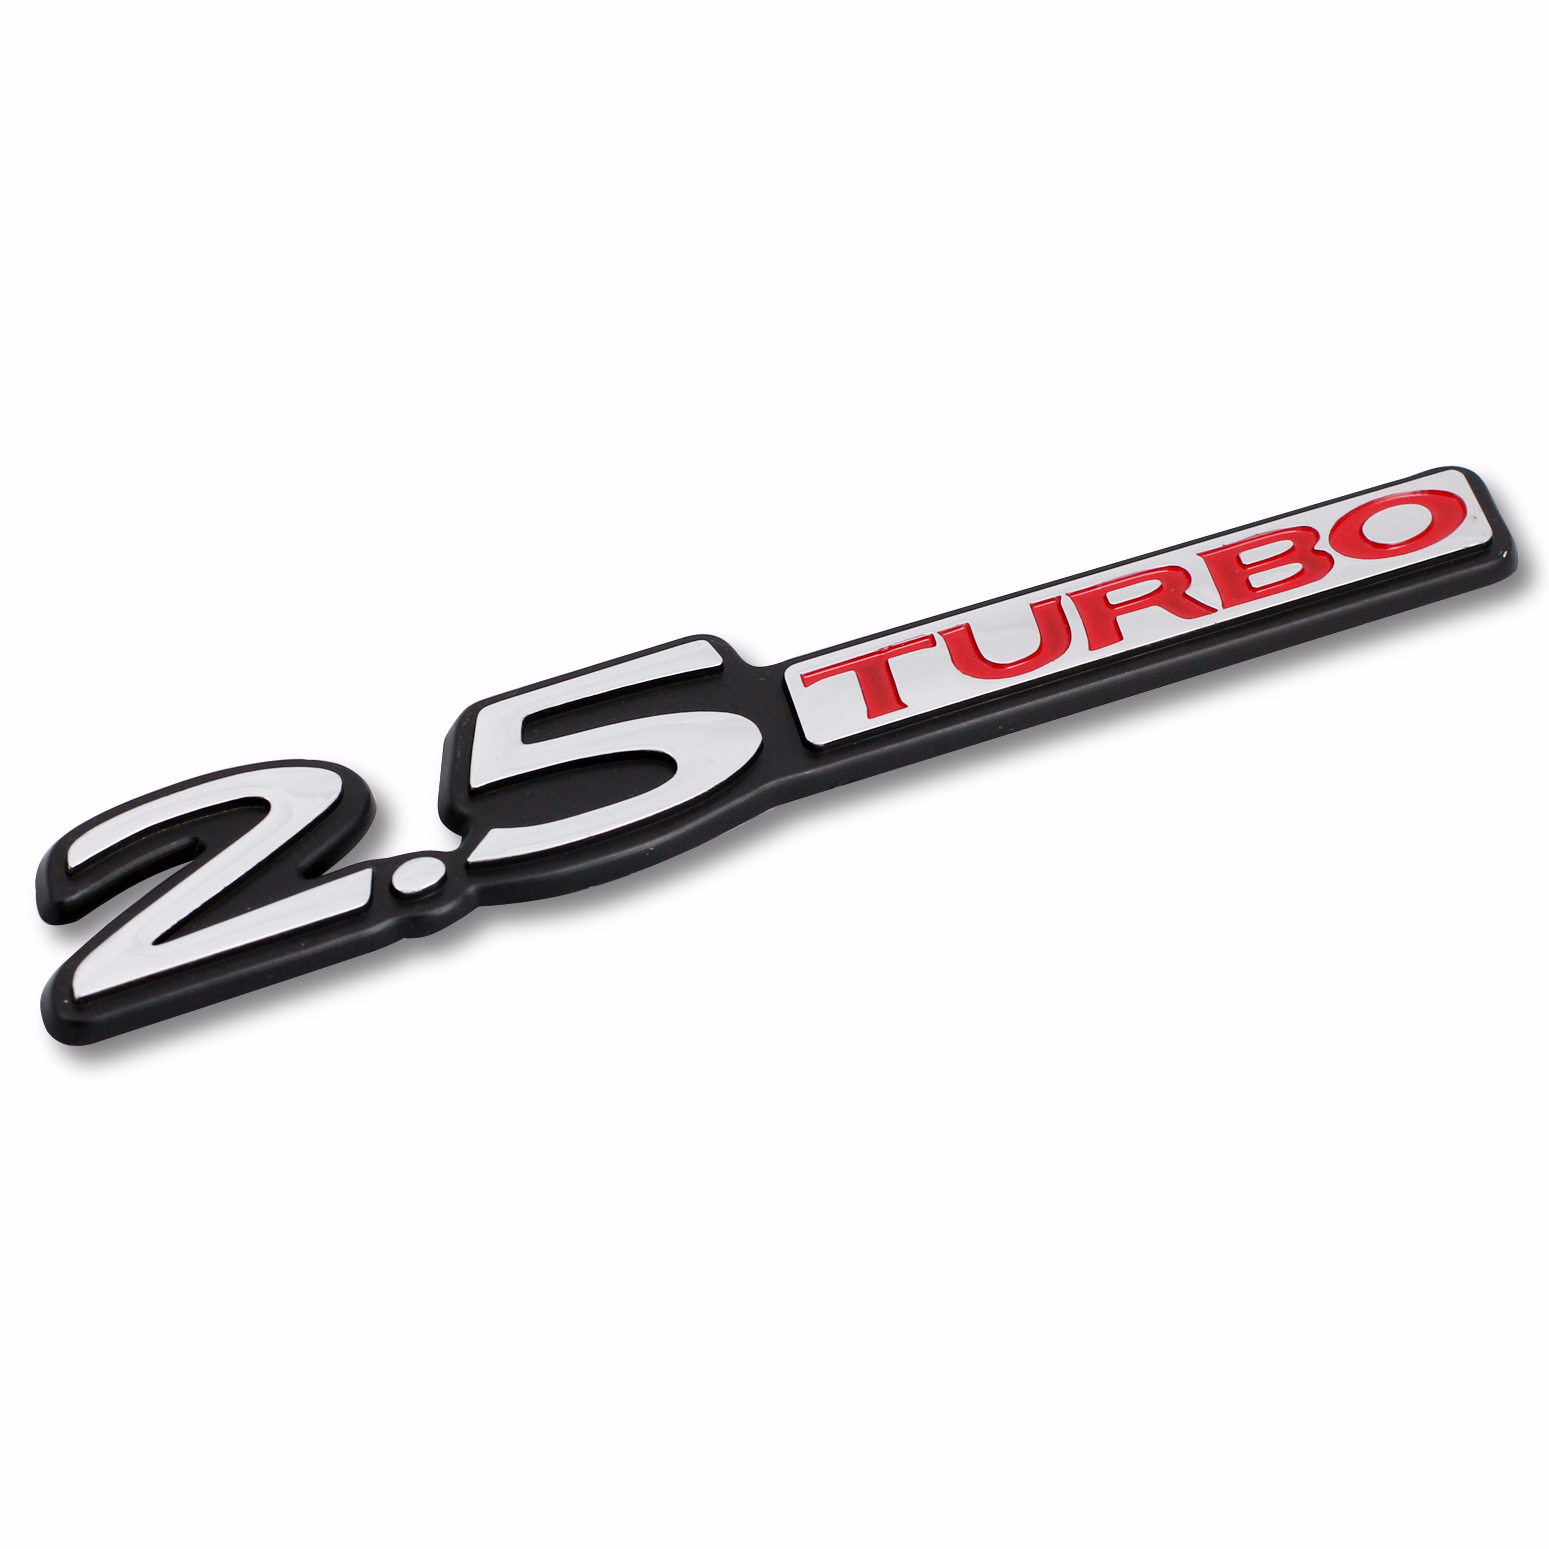 Emblem Logo 2.5 Turbo